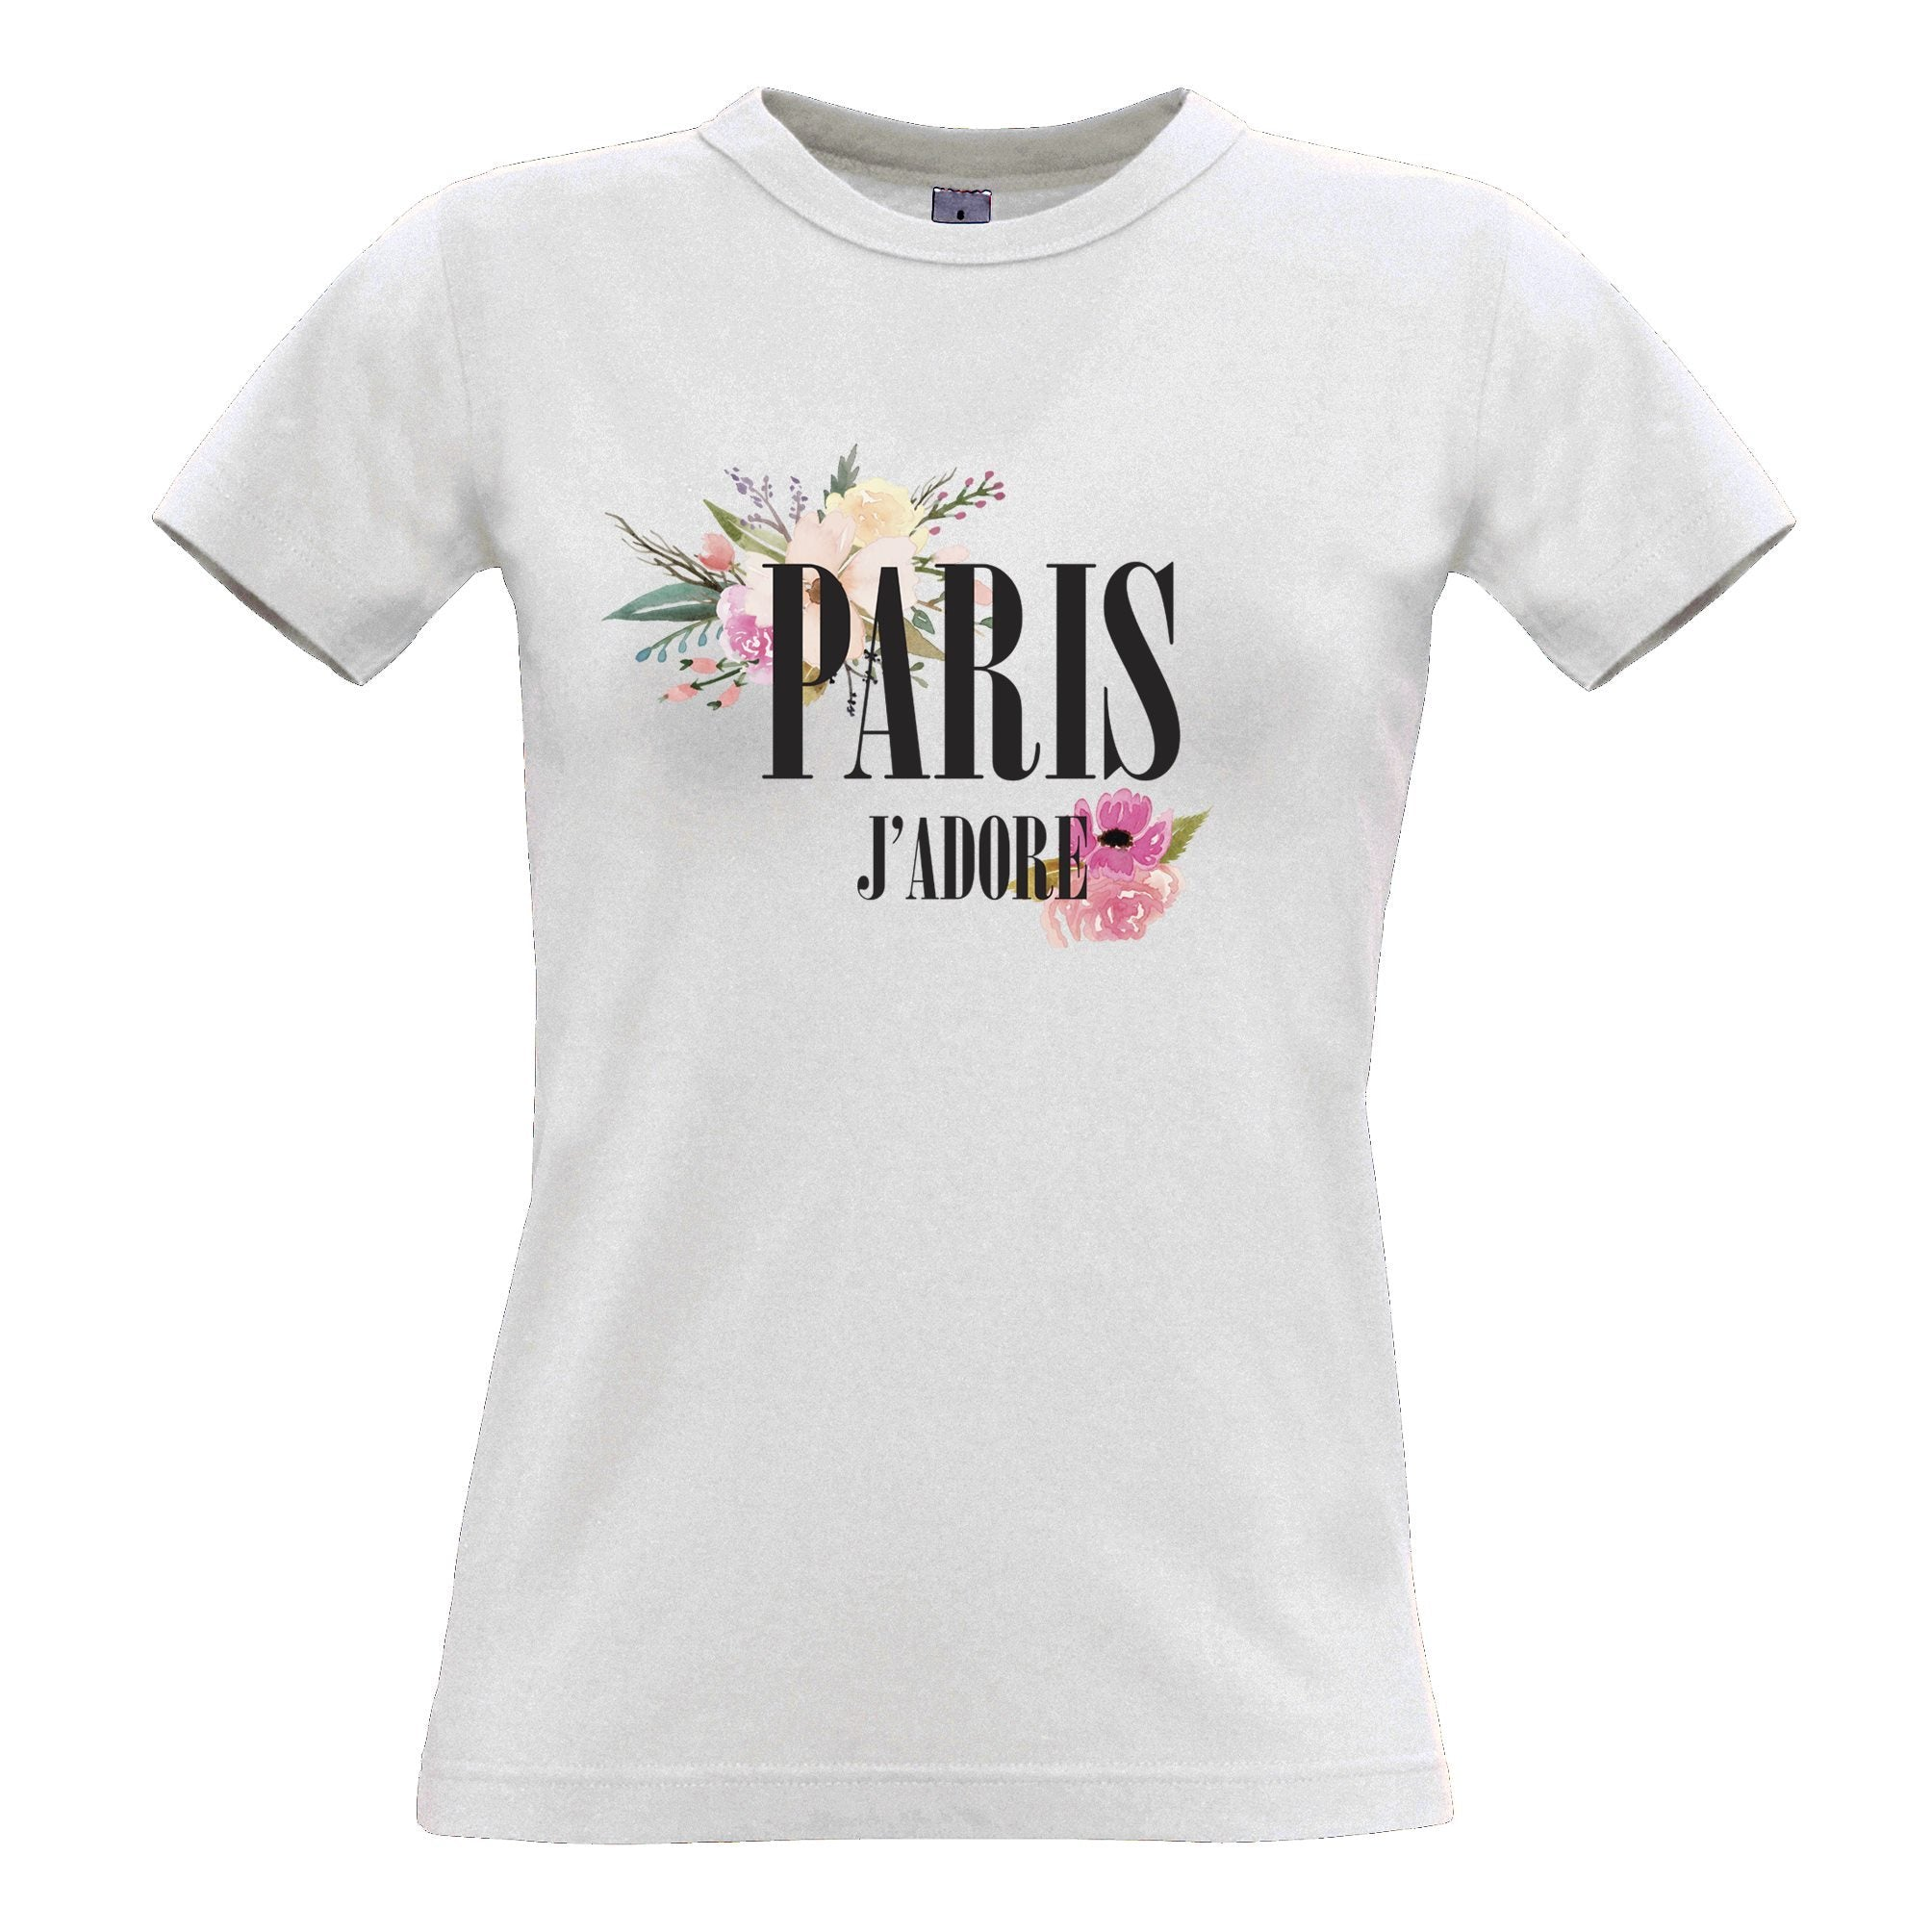 Watercolour Art Womens T Shirt J'adore Paris Flowers Logo